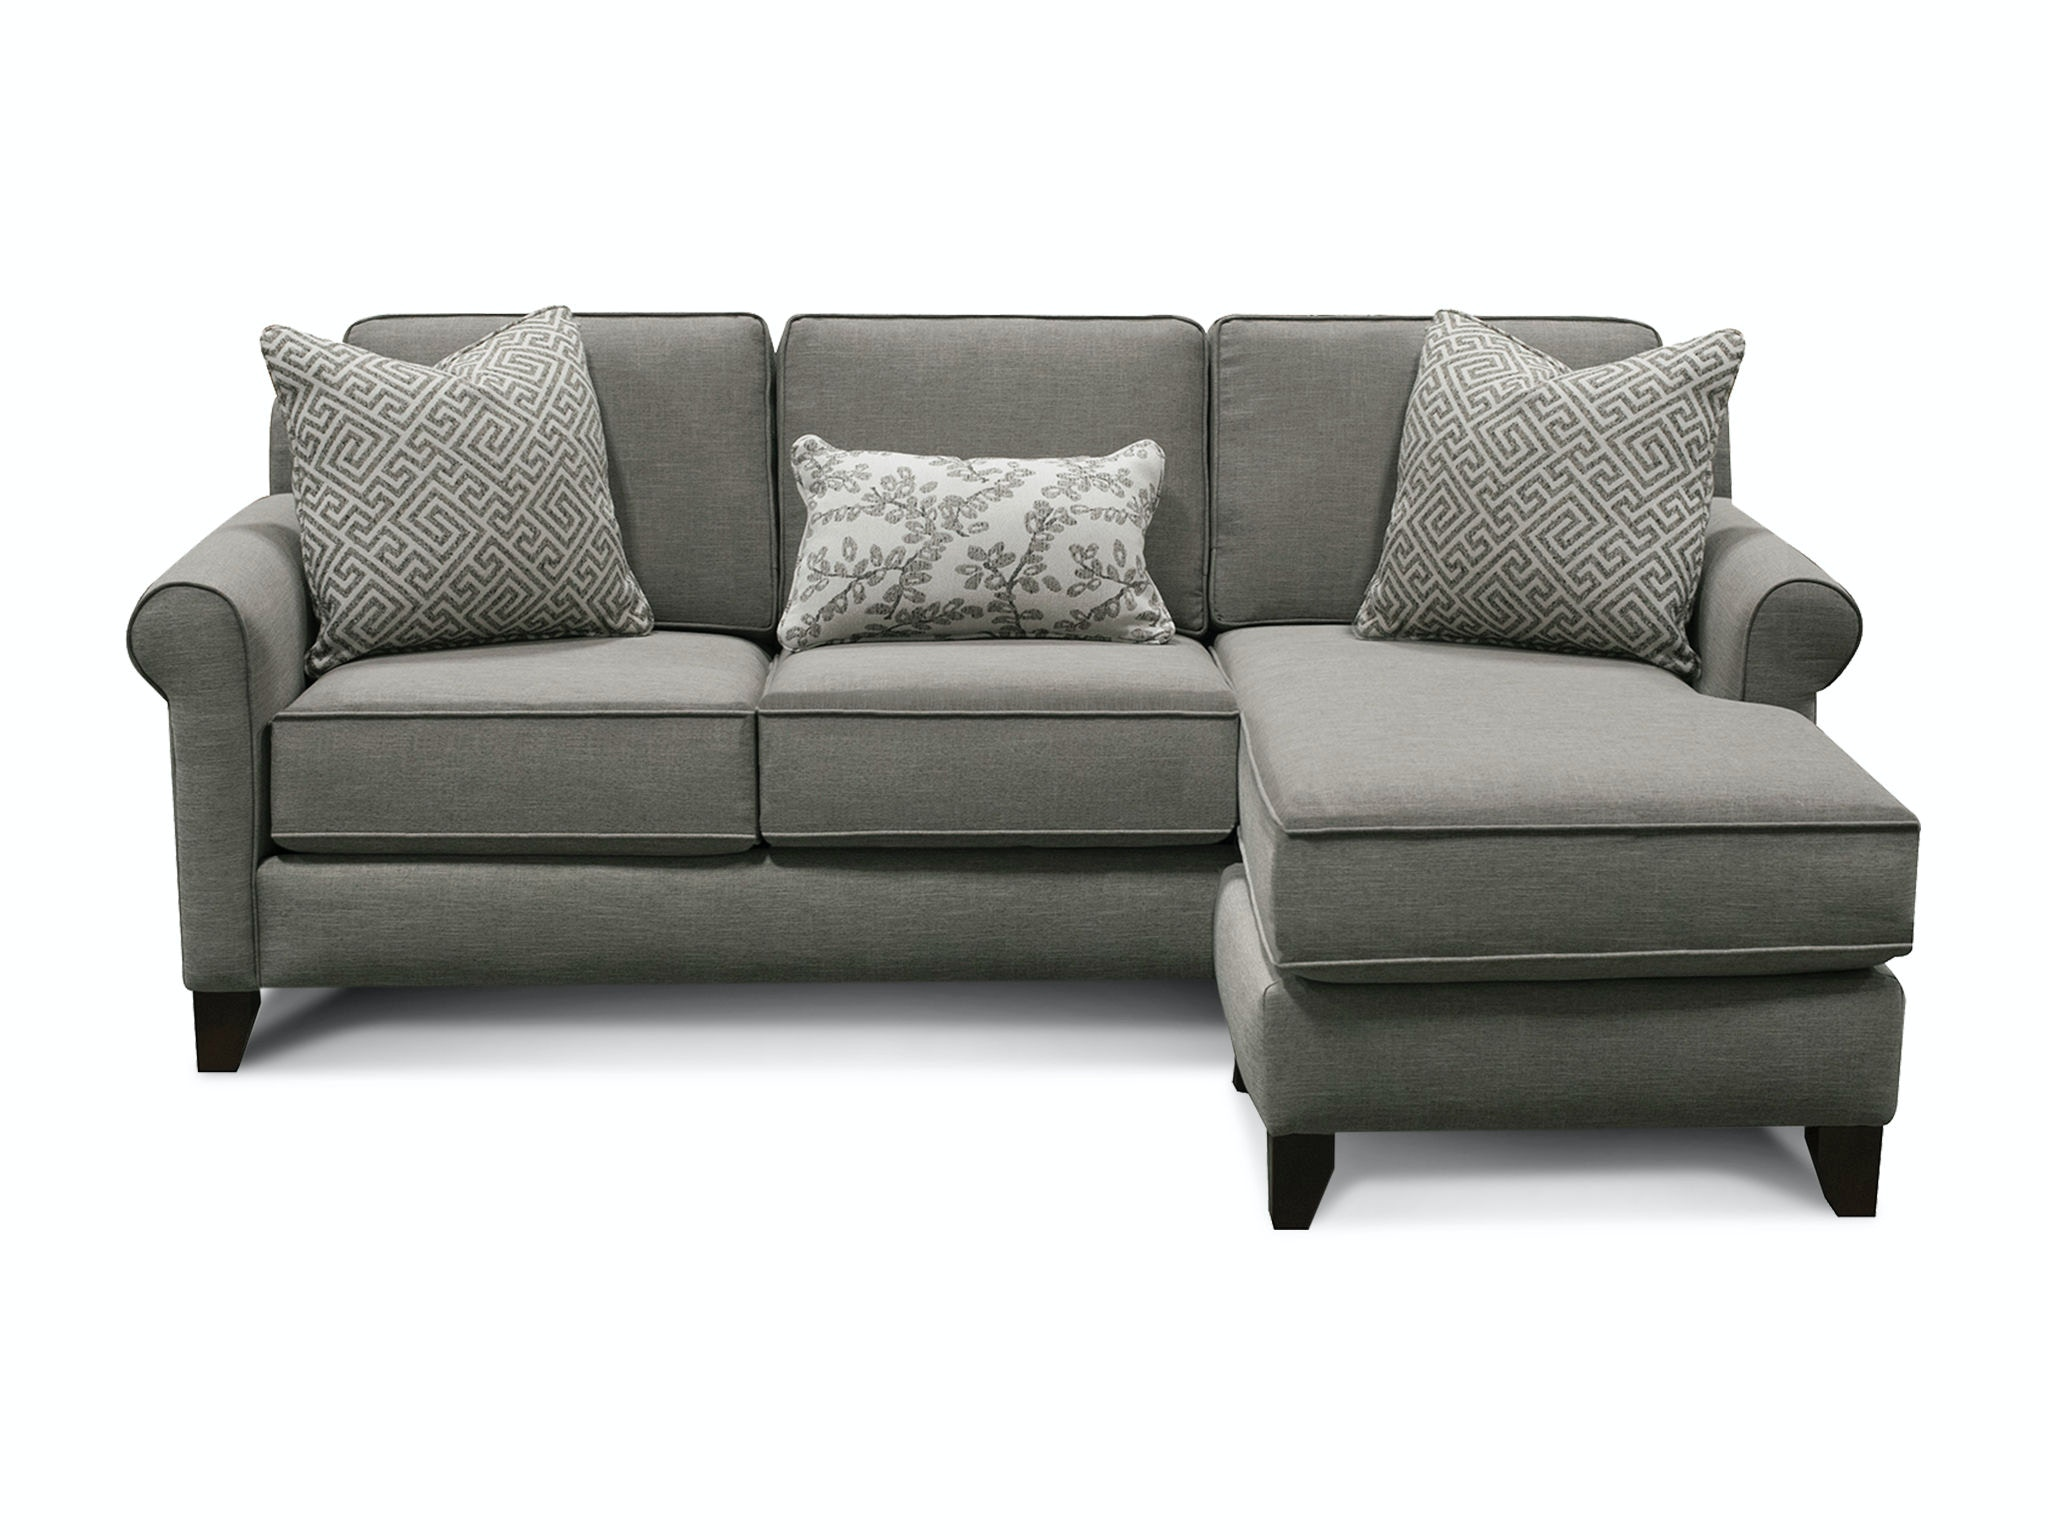 sofa w chaise leather modular uk england living room spencer with 7m00 56